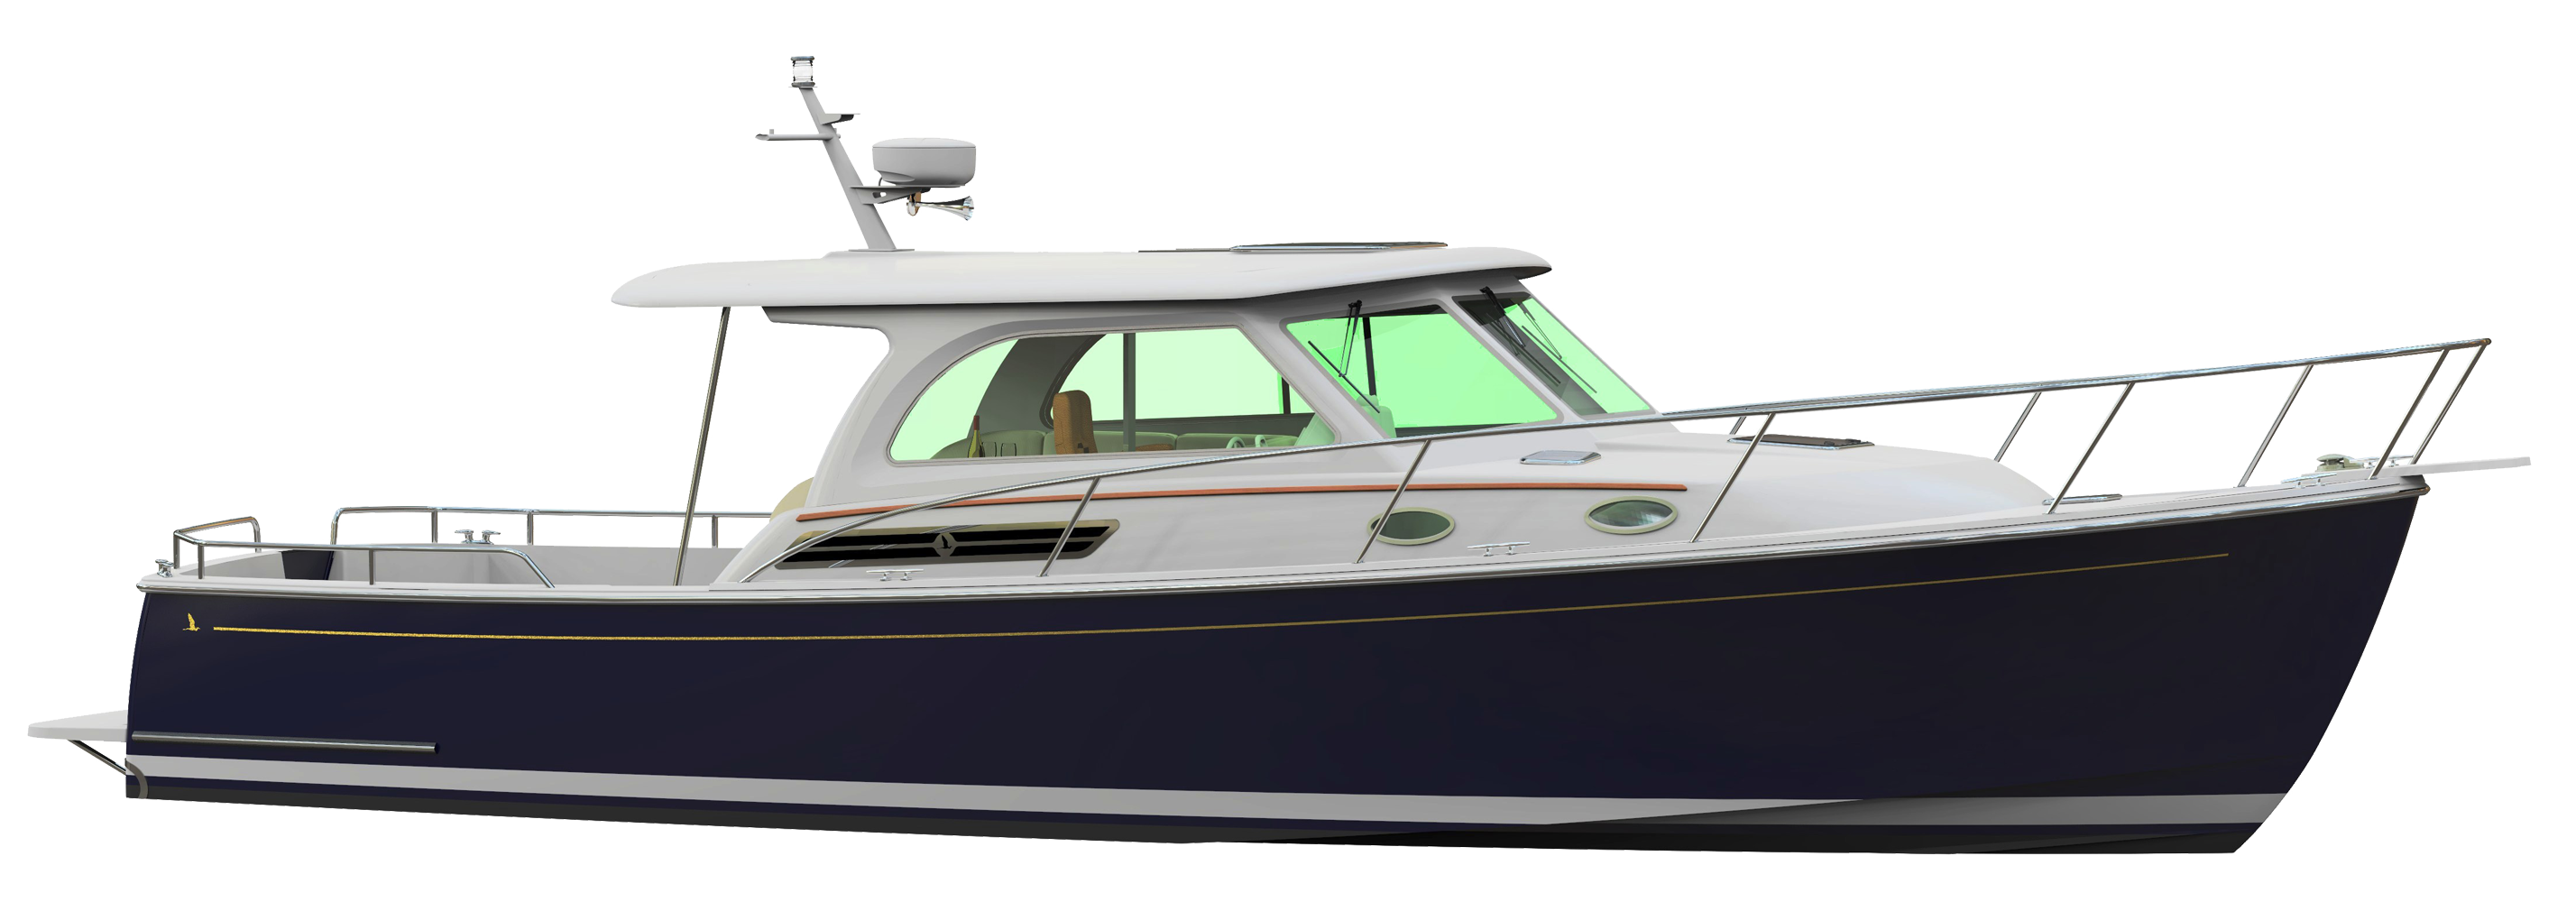 Boat Transparent Clipart, Speed, Fishing, Yacht Boat PNG.